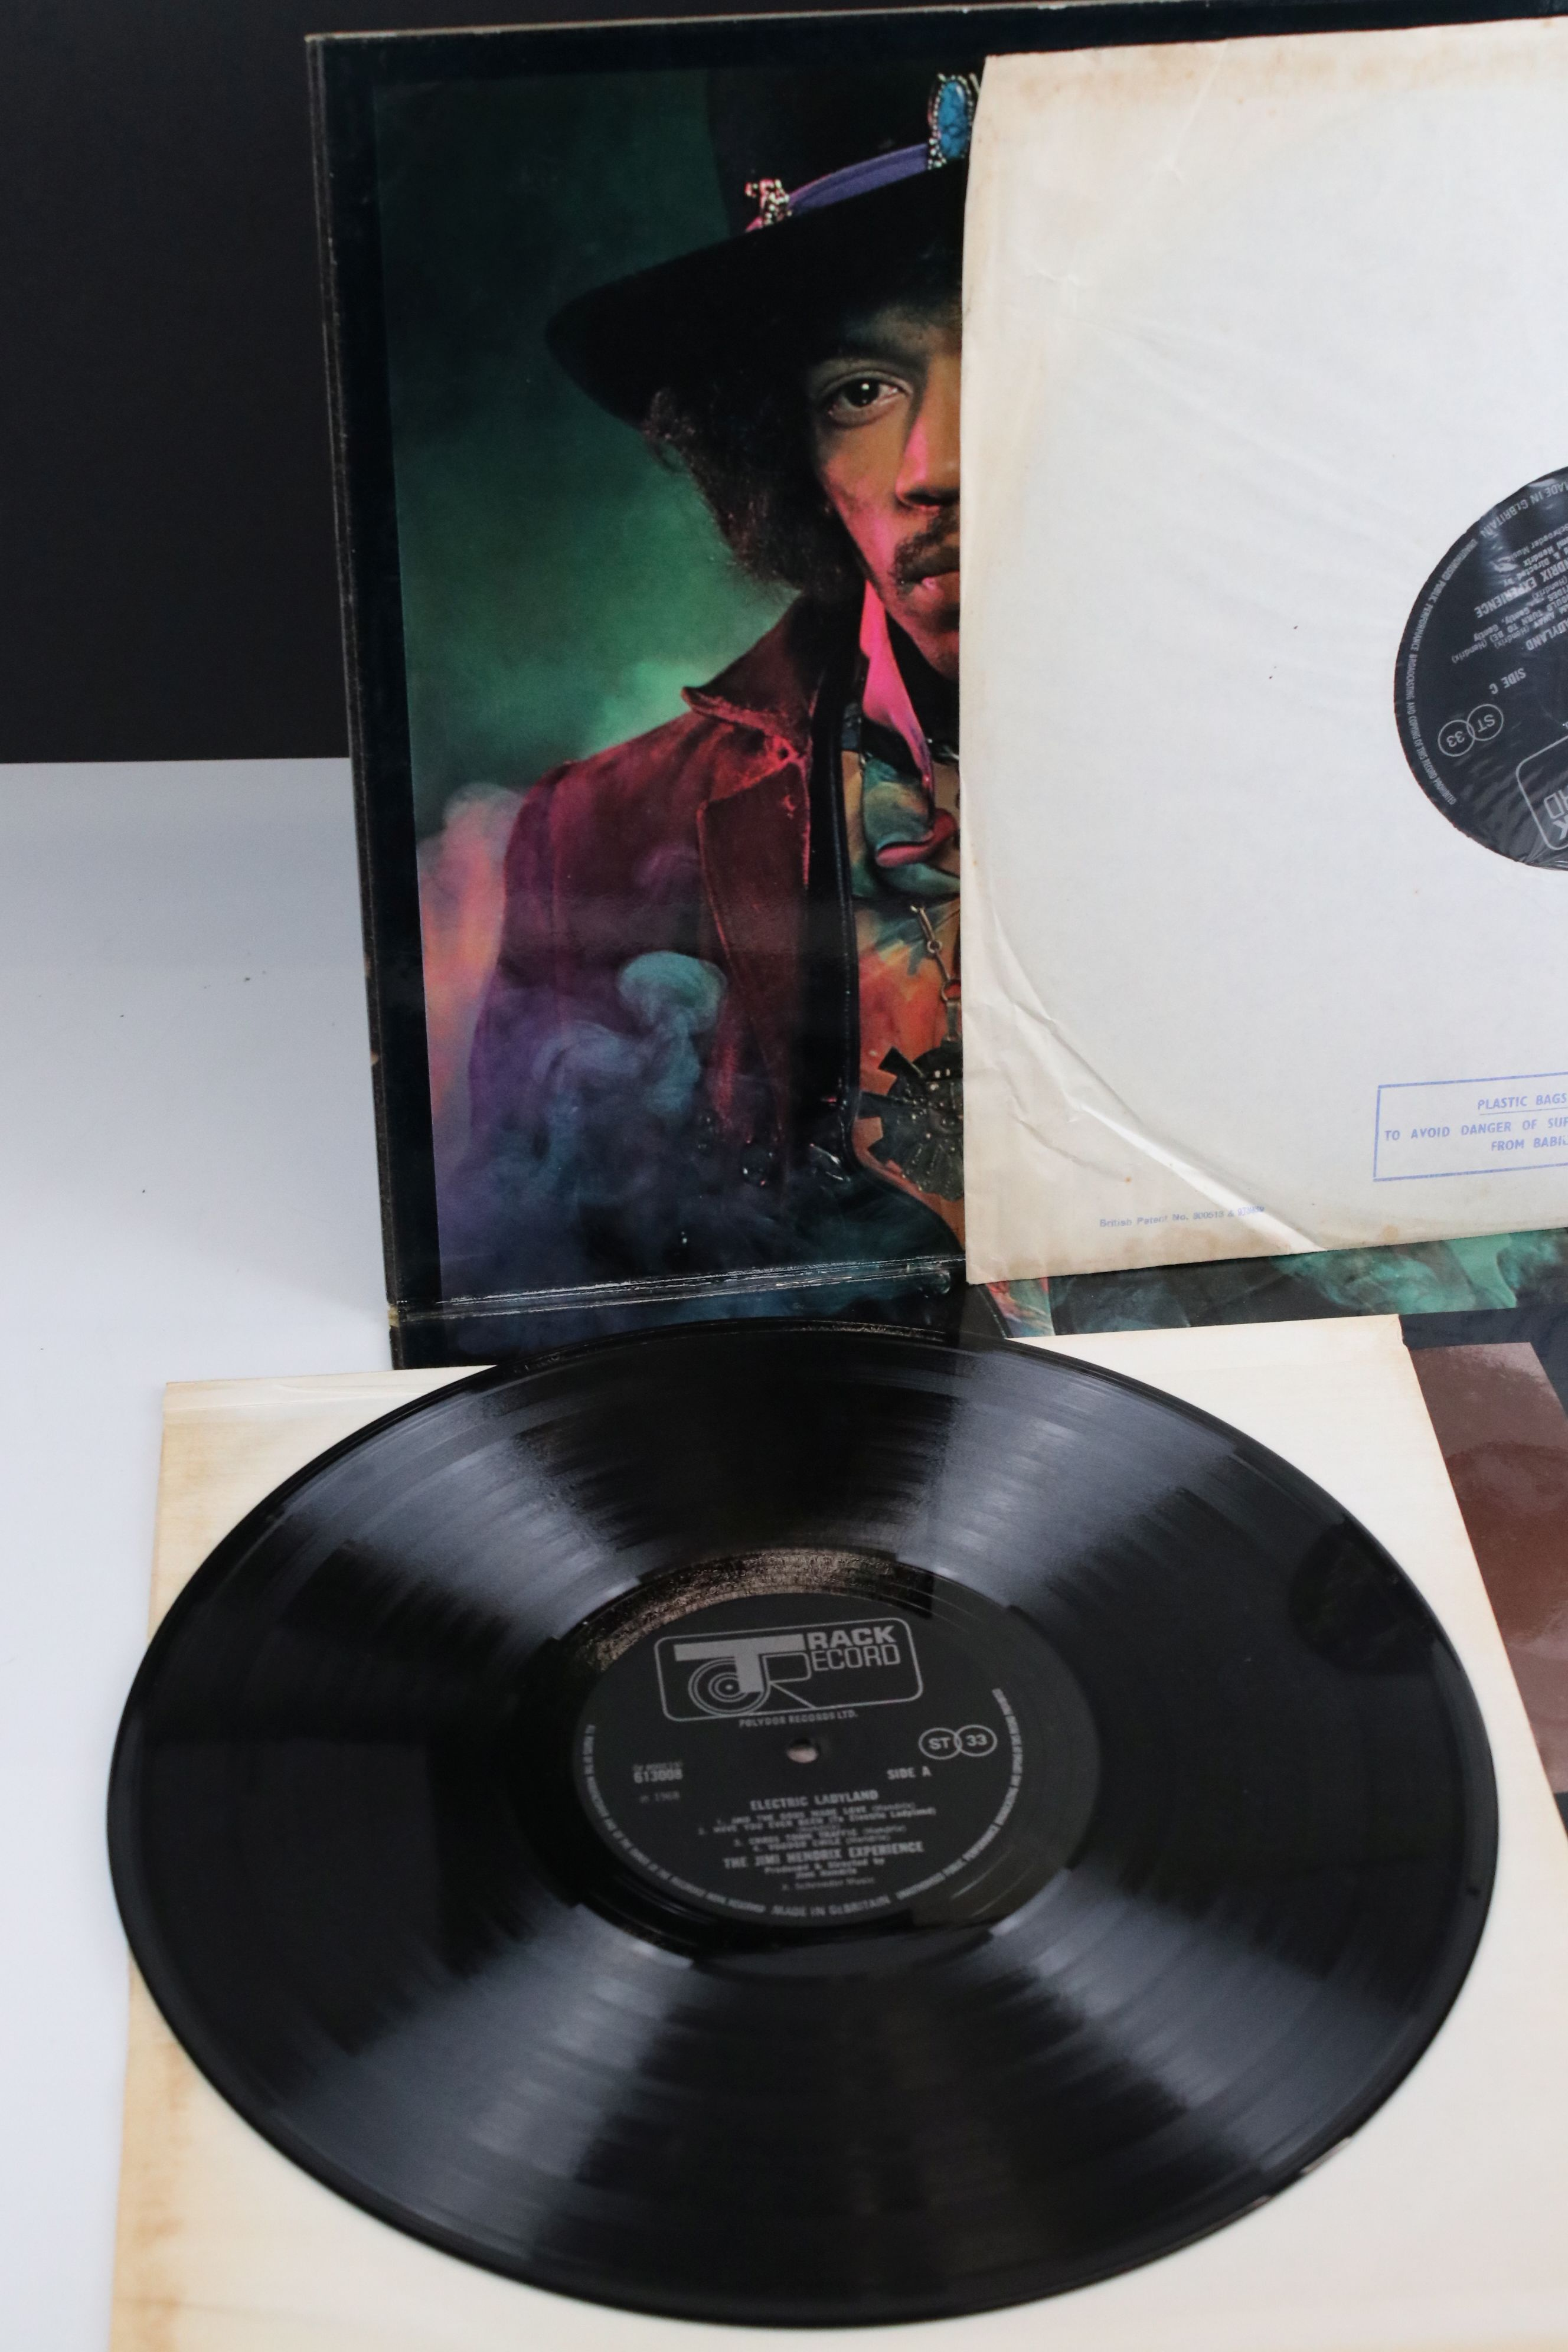 Vinyl - Jimi Hendrix Electric Ladyland on Track 61300819 blue text, Jimi to the right when - Image 2 of 9